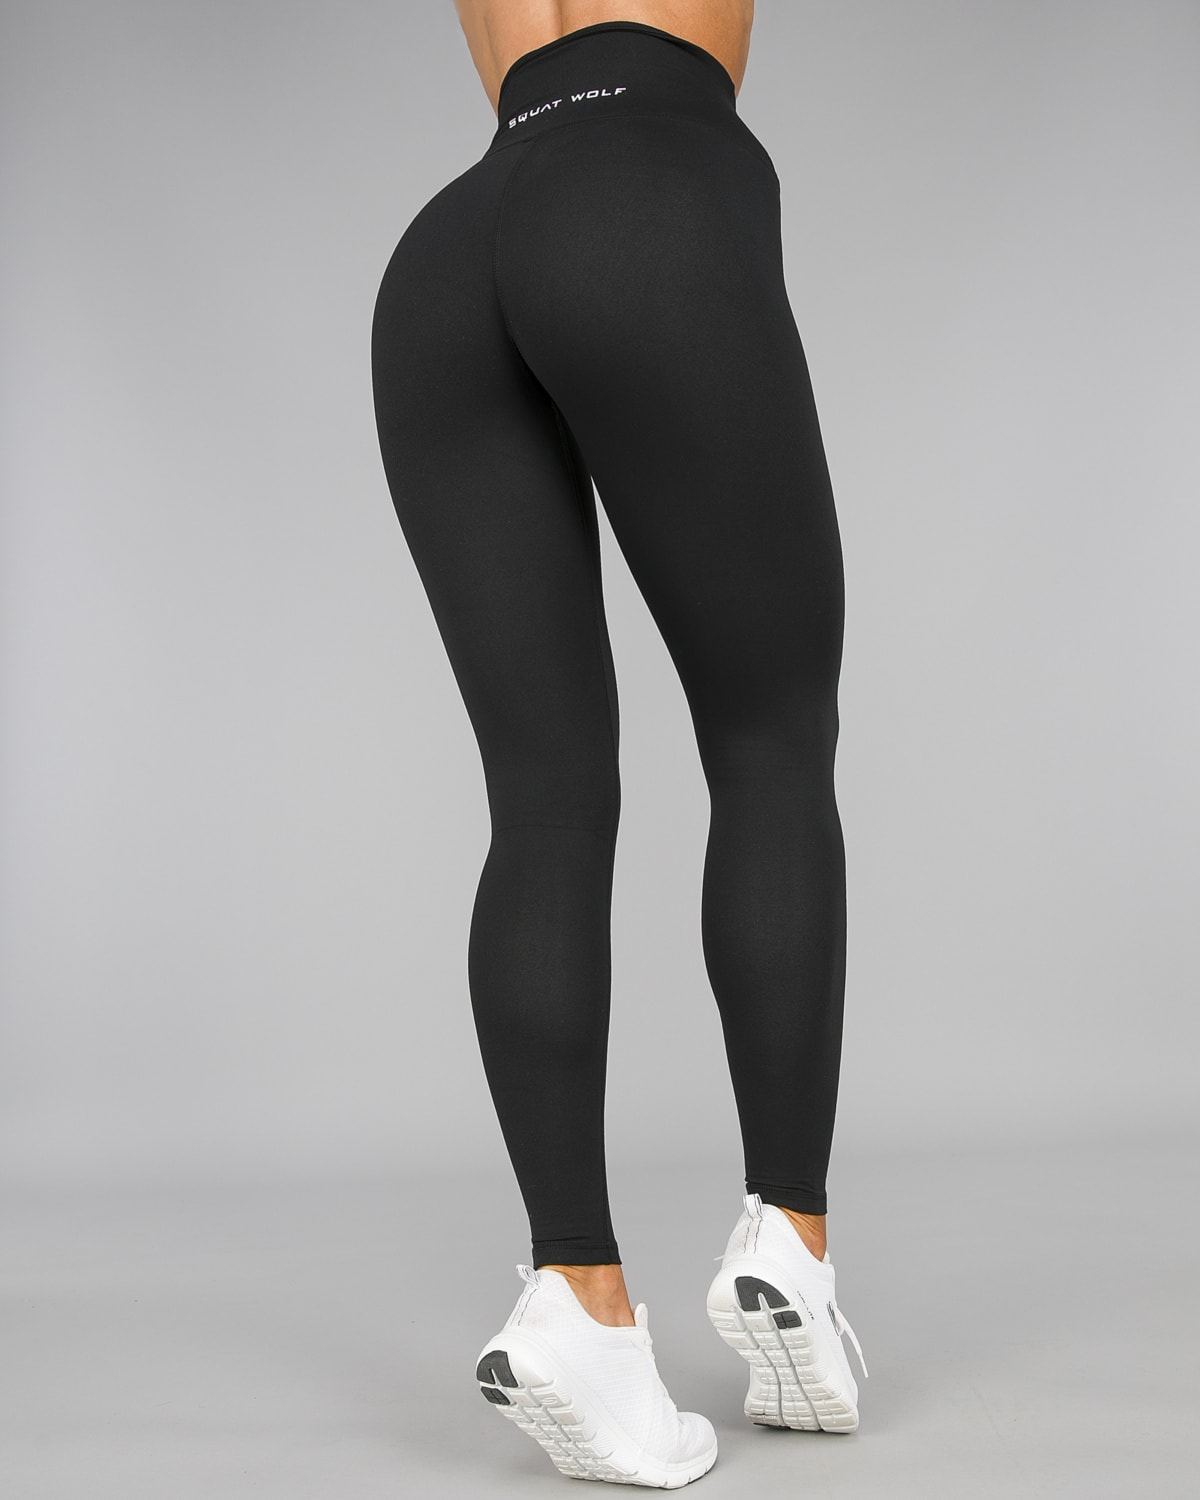 Squat Wolf – Hera Leggings – Black2